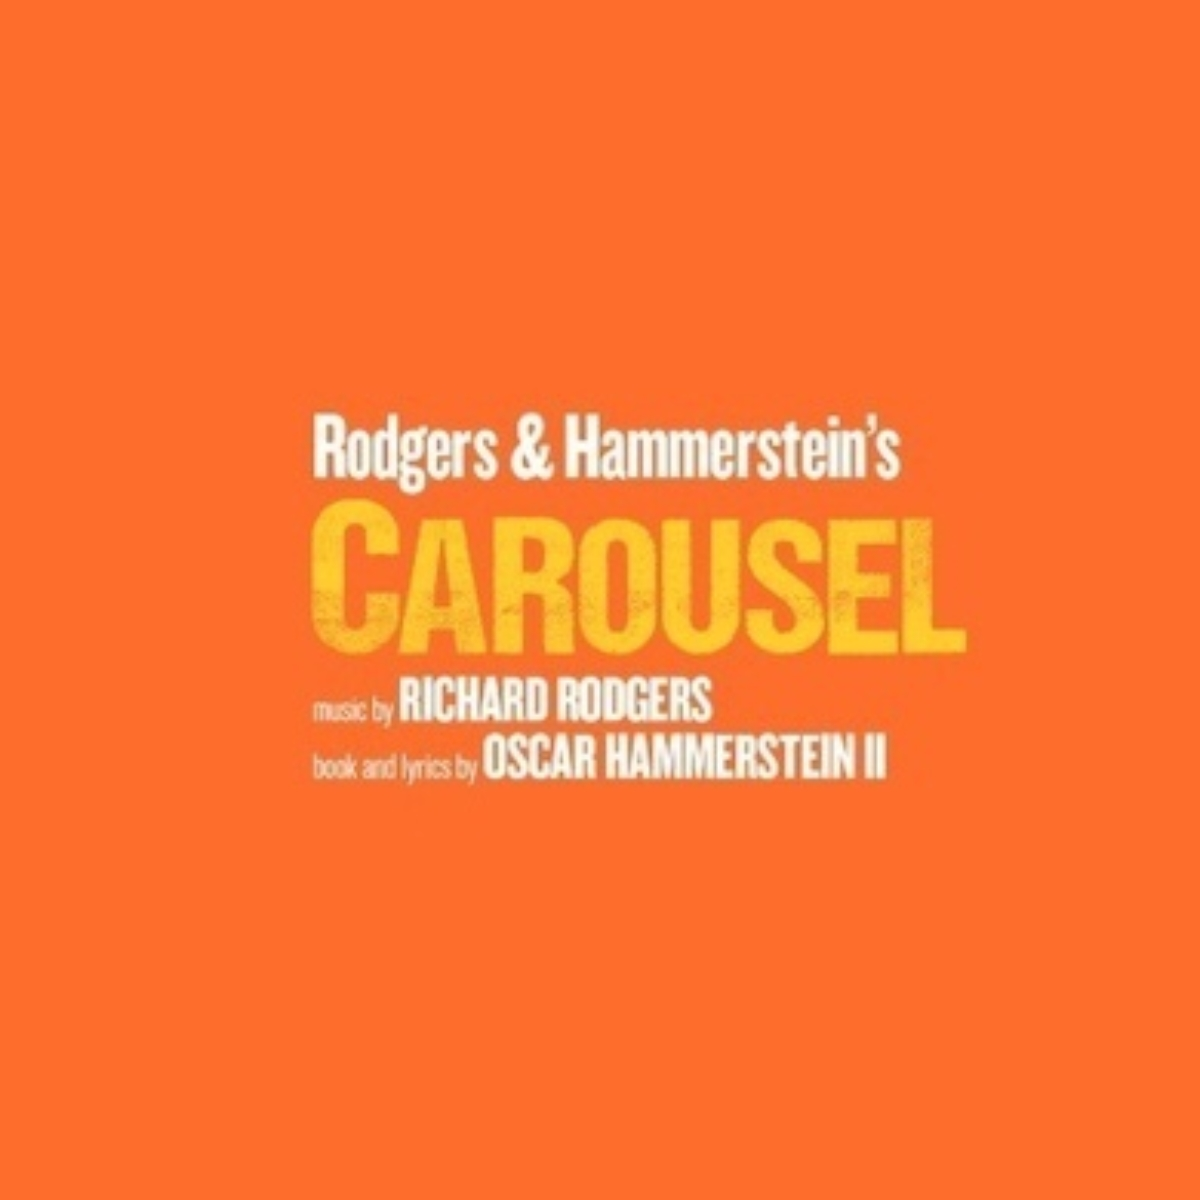 Rodgers and Hammerstein's Carousel Images